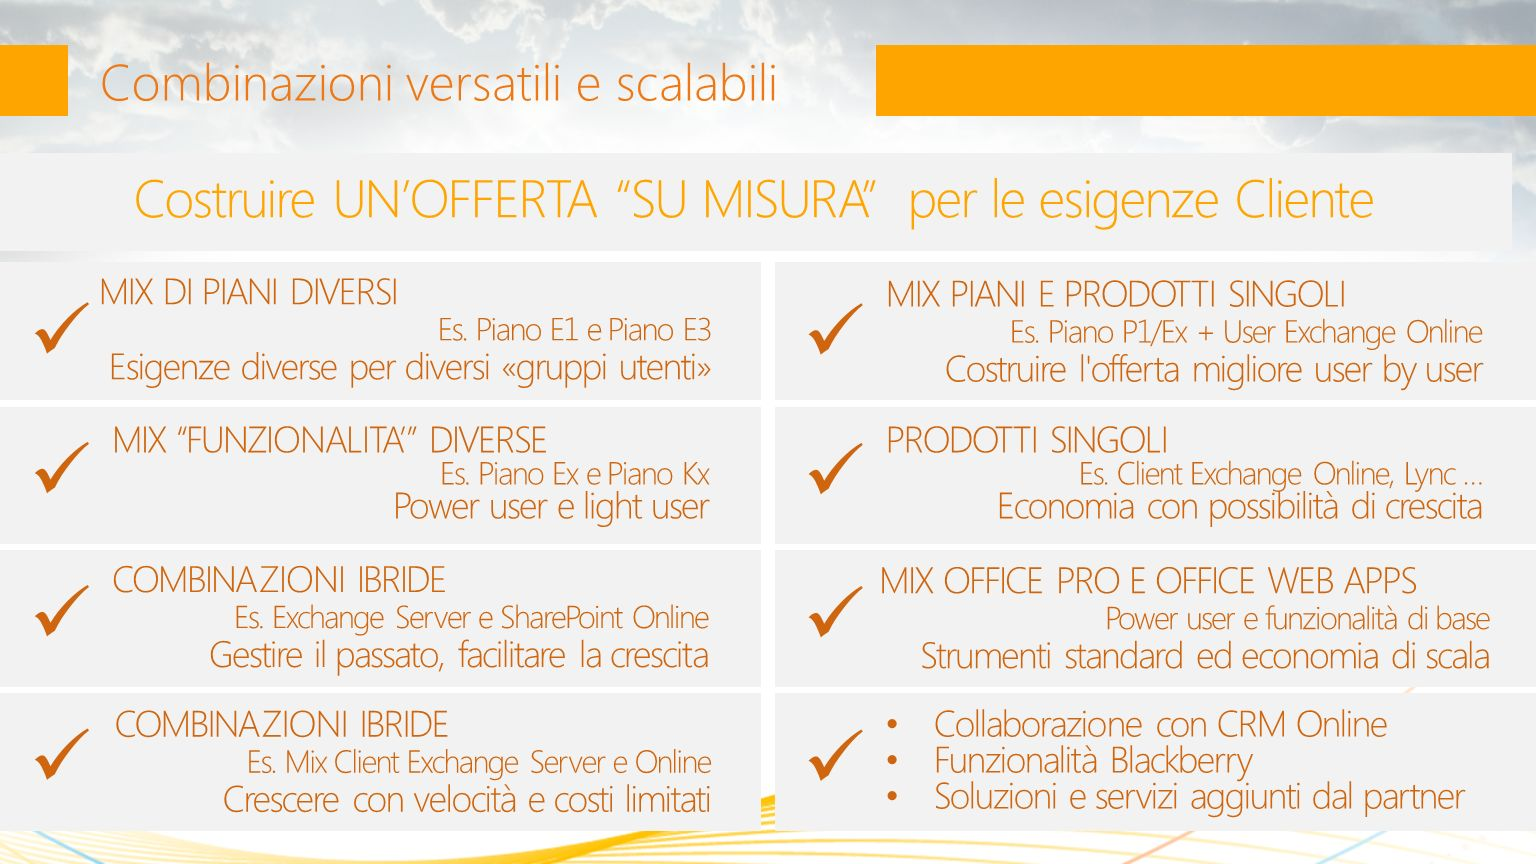 Per le tue Offerte Cliente Usa Office 365 Cost Estimator www.microsoft.com/business/office365tools/estimator/cost- estimator.aspx?culture=it-it&data=eu Dal tuo Office 365 Uso Interno Crea e gestisci Proposte dOrdine Dalla tua Partner Commerce Dashboard Gestisci e controlla le tue offerte https://partnerdashboard.microsoft.com/partnerdashboard/PartnerDashboard.aspx https://partnerdashboard.microsoft.com/partnerdashboard/PartnerDashboard.aspx